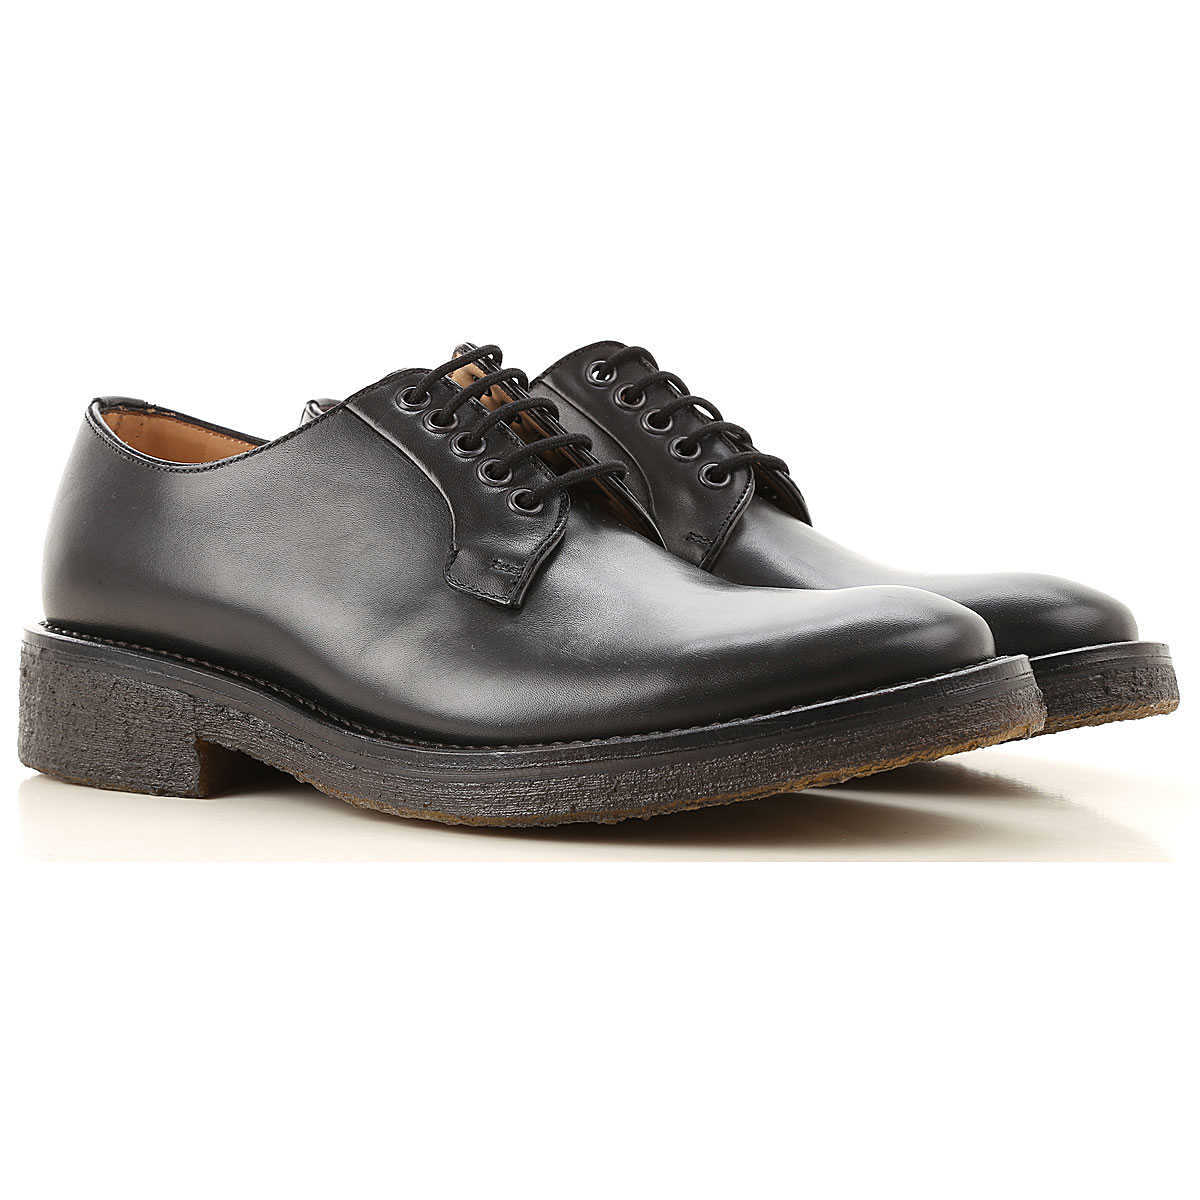 Seboys Lace Up Shoes for Men Oxfords Derbies and Brogues - GOOFASH